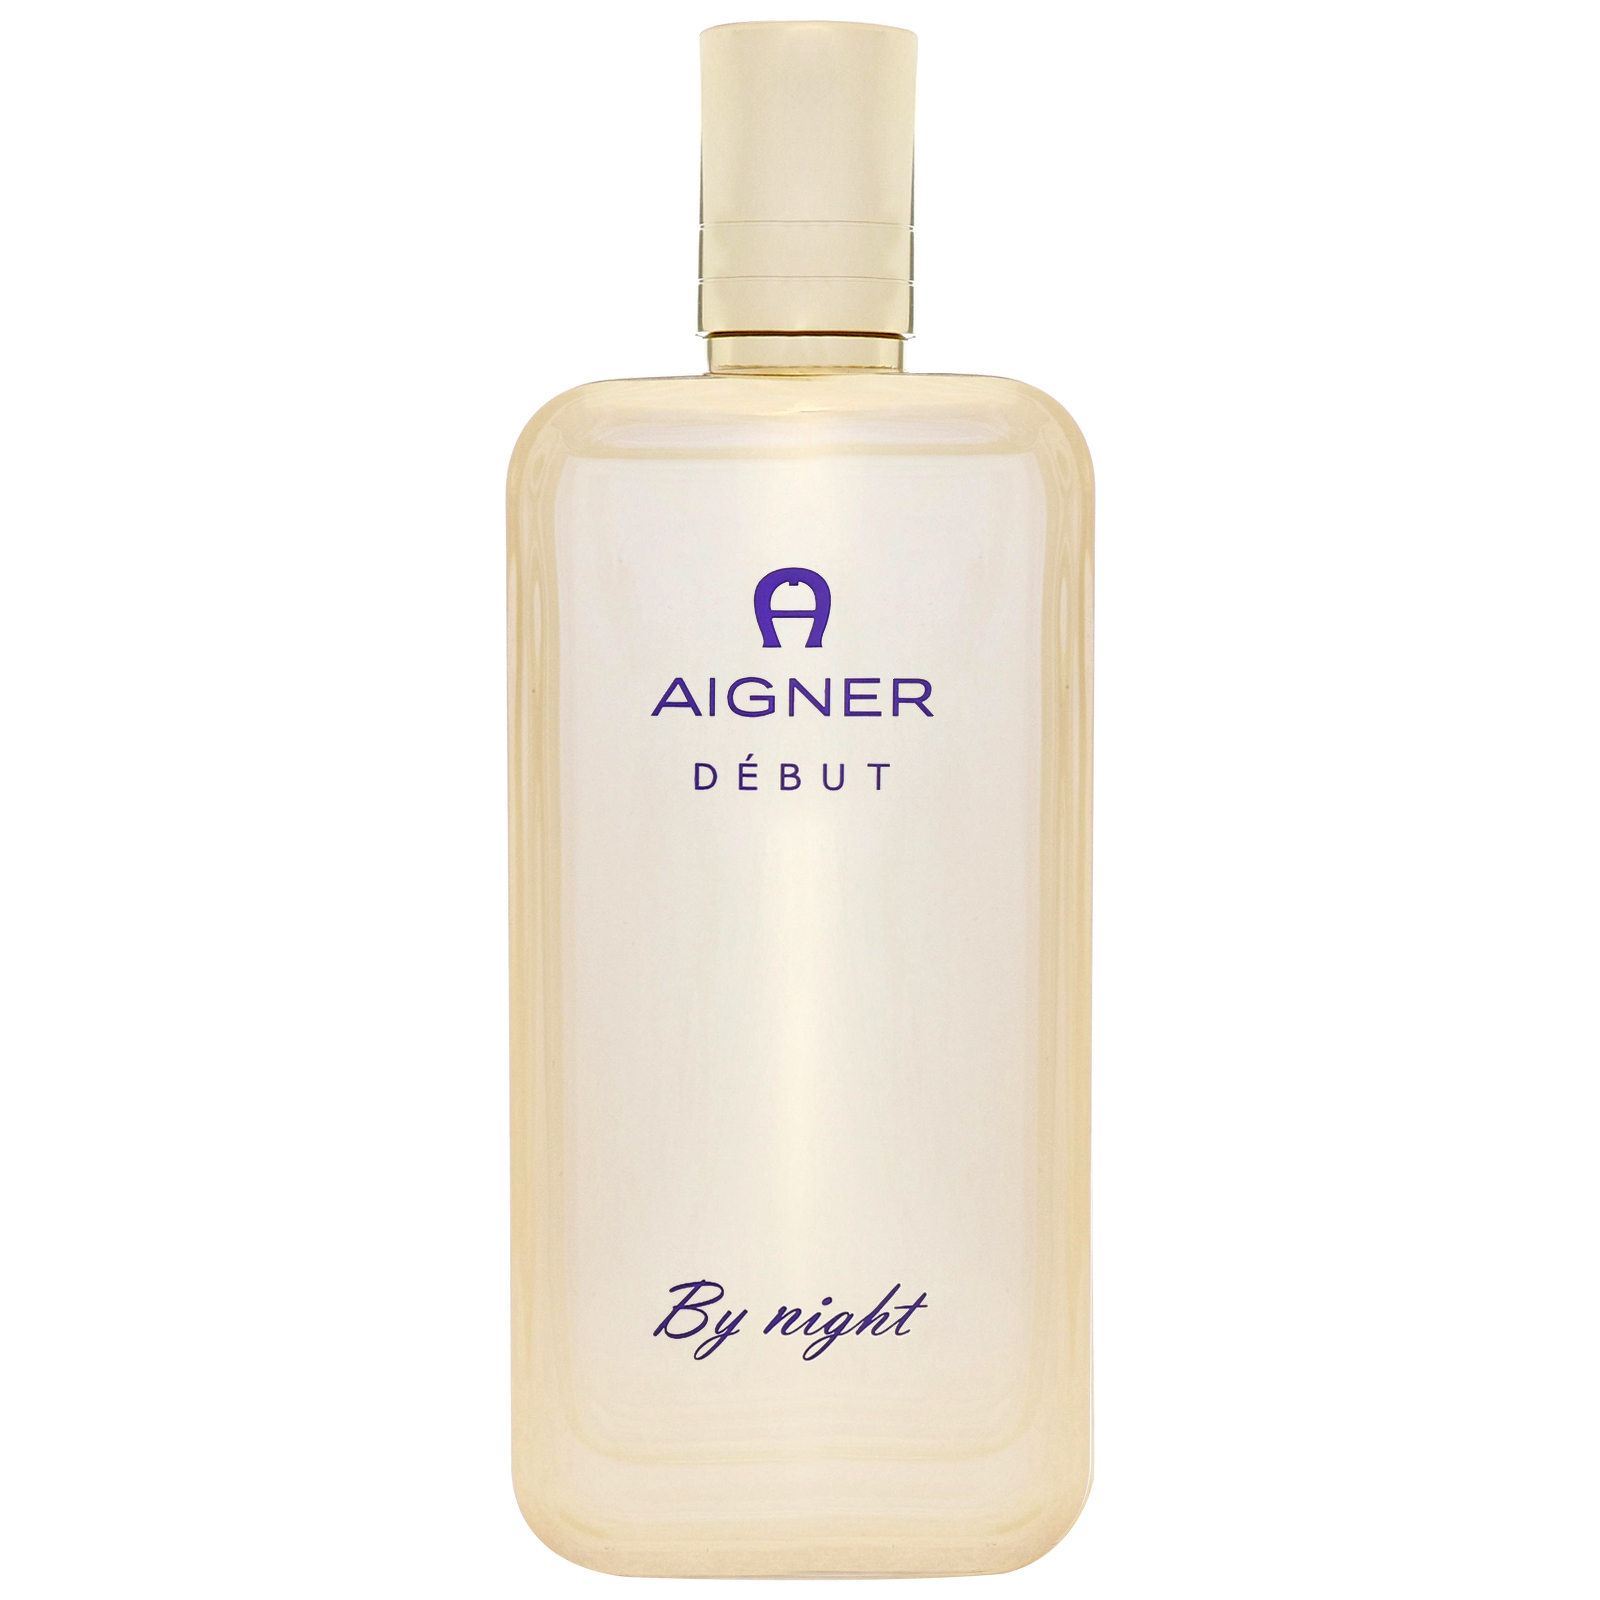 Etienne Aigner Debut By Night Eau de Parfum Spray 100ml